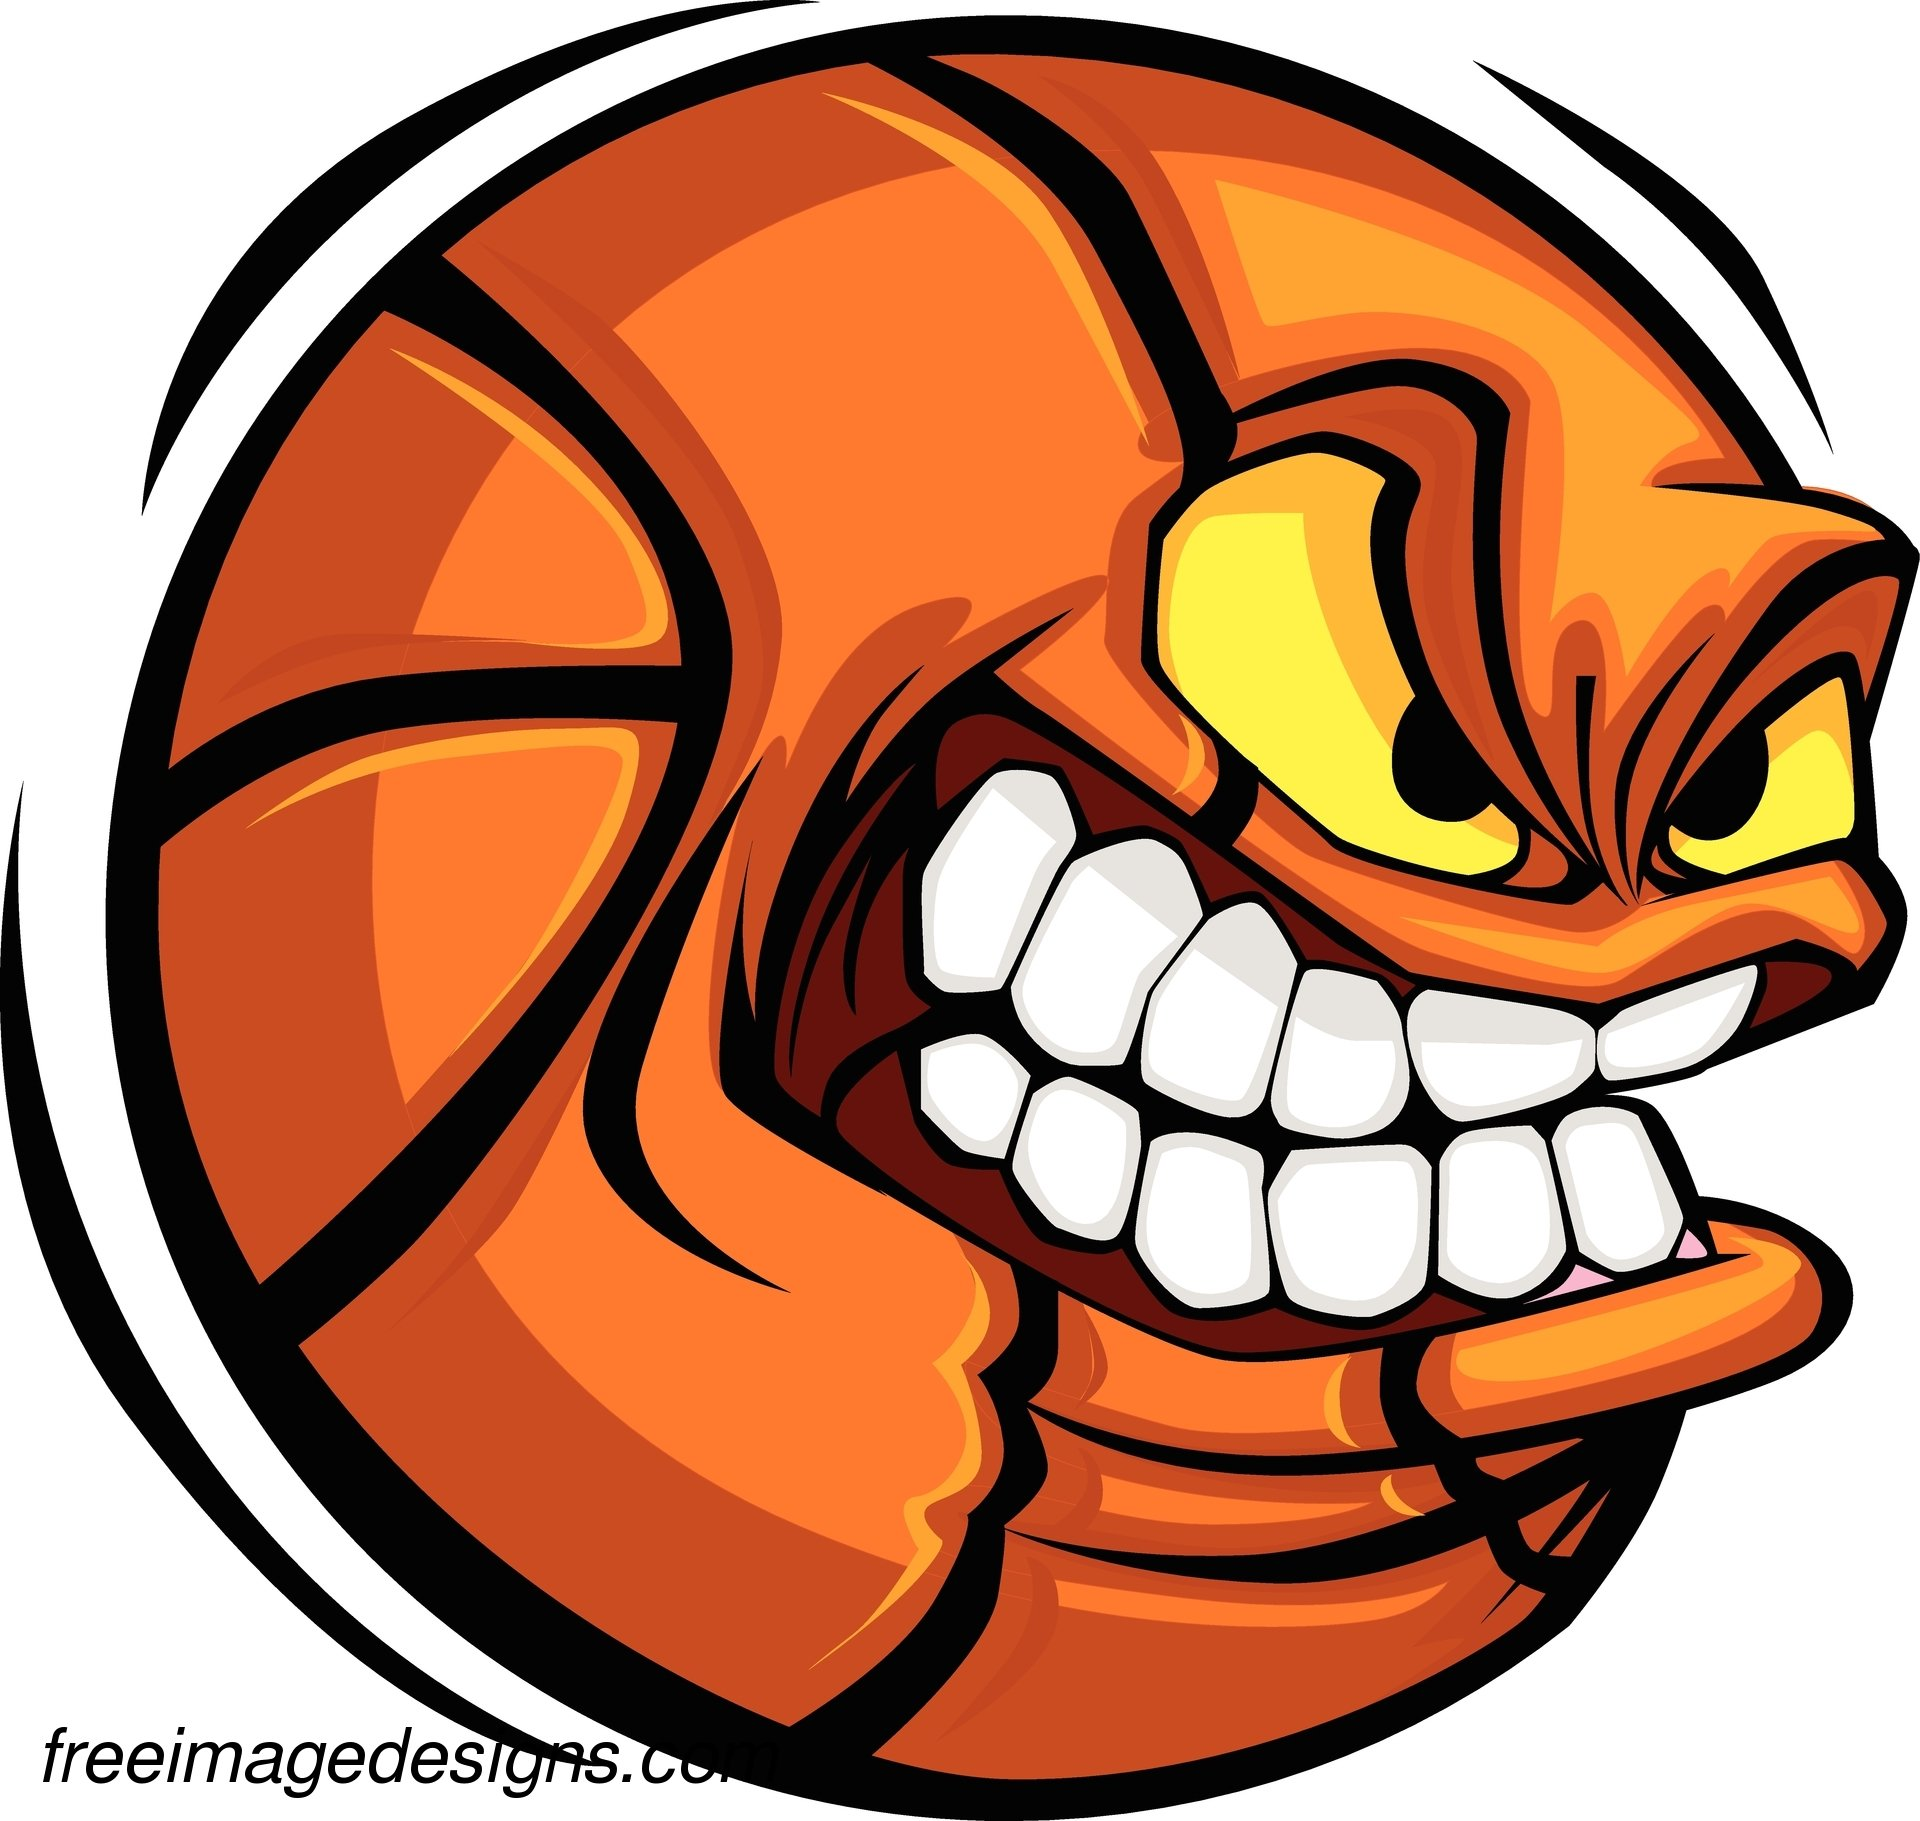 Angry basketball free image tattoo design download free for Designs com